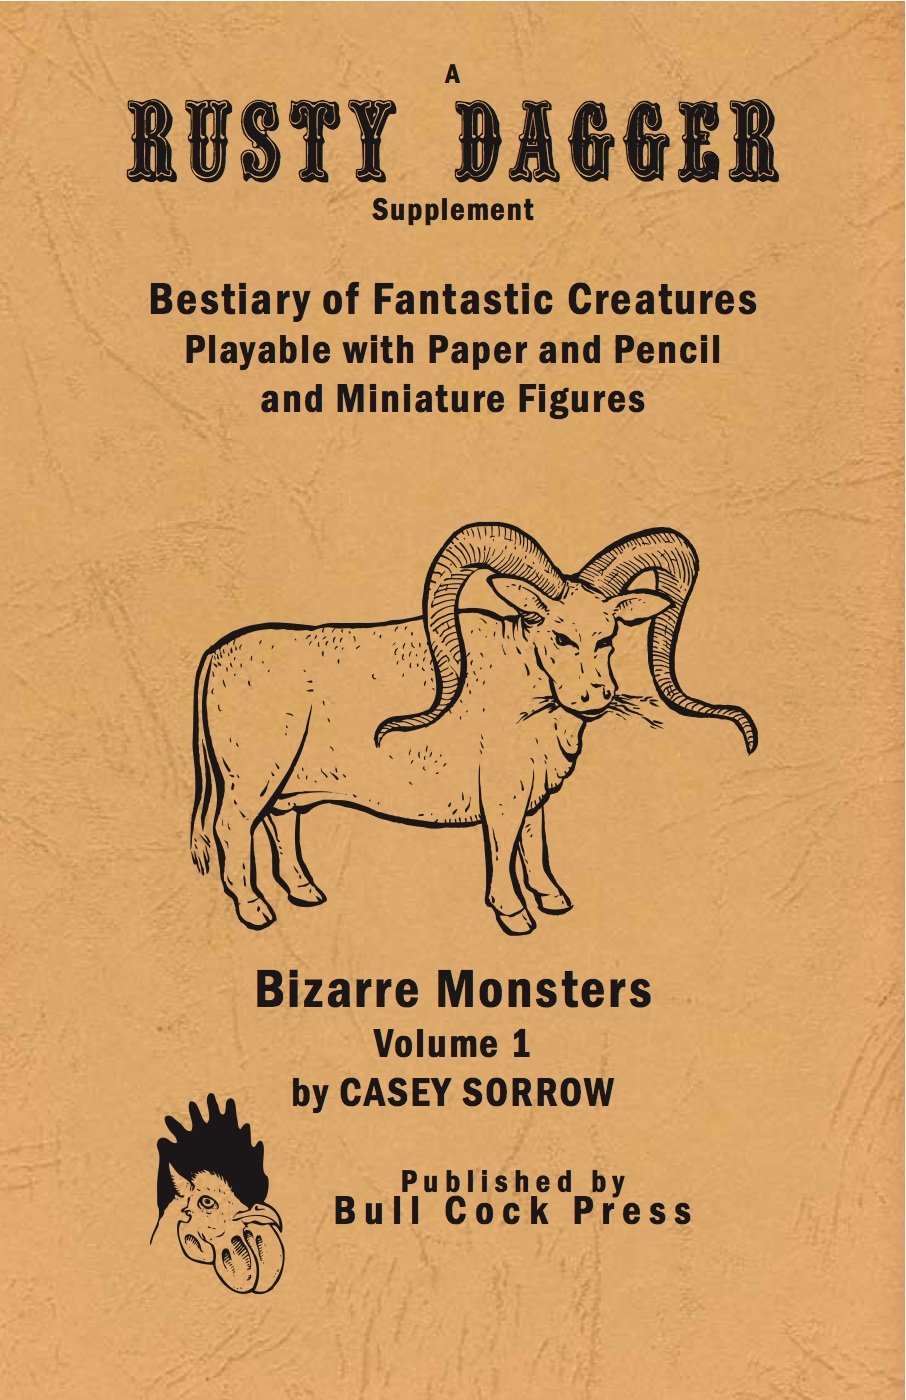 Bestiary of Fantastic Creatures Playable with Paper Pencil and Miniature Figures by Casey Sorrow - Odd Nodd Art Supply